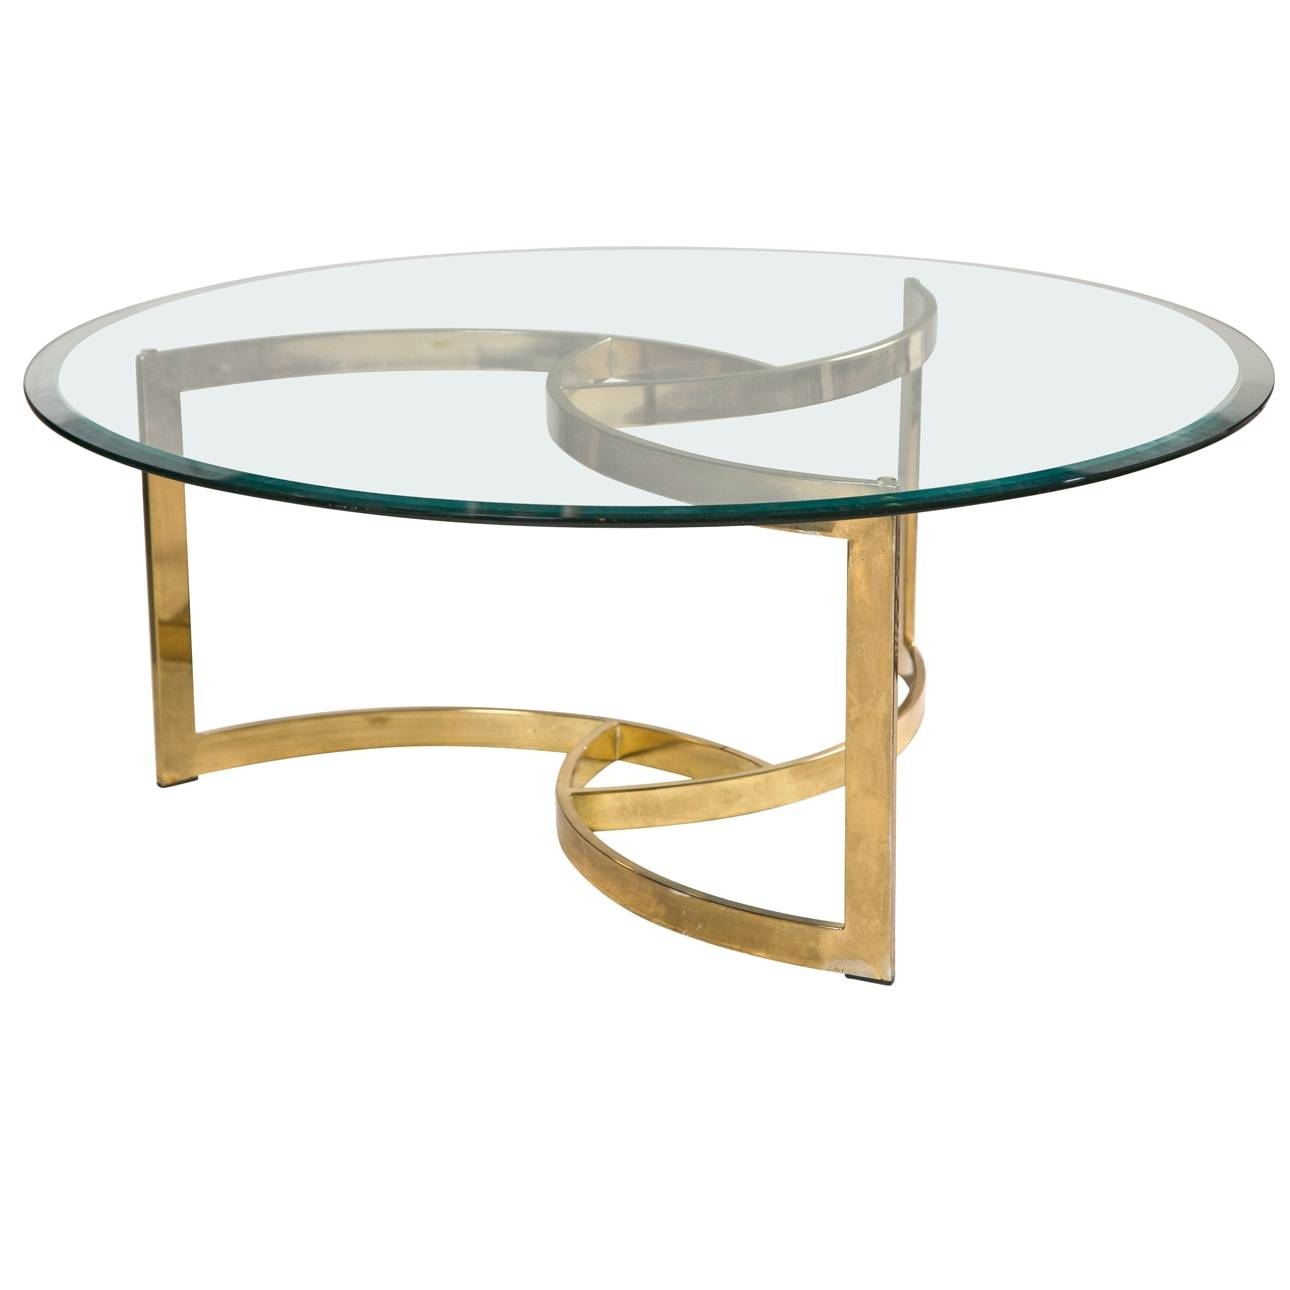 Coffee Table: Beautiful Glass Round Coffee Table Designs Small in Unusual Glass Coffee Tables (Image 4 of 30)